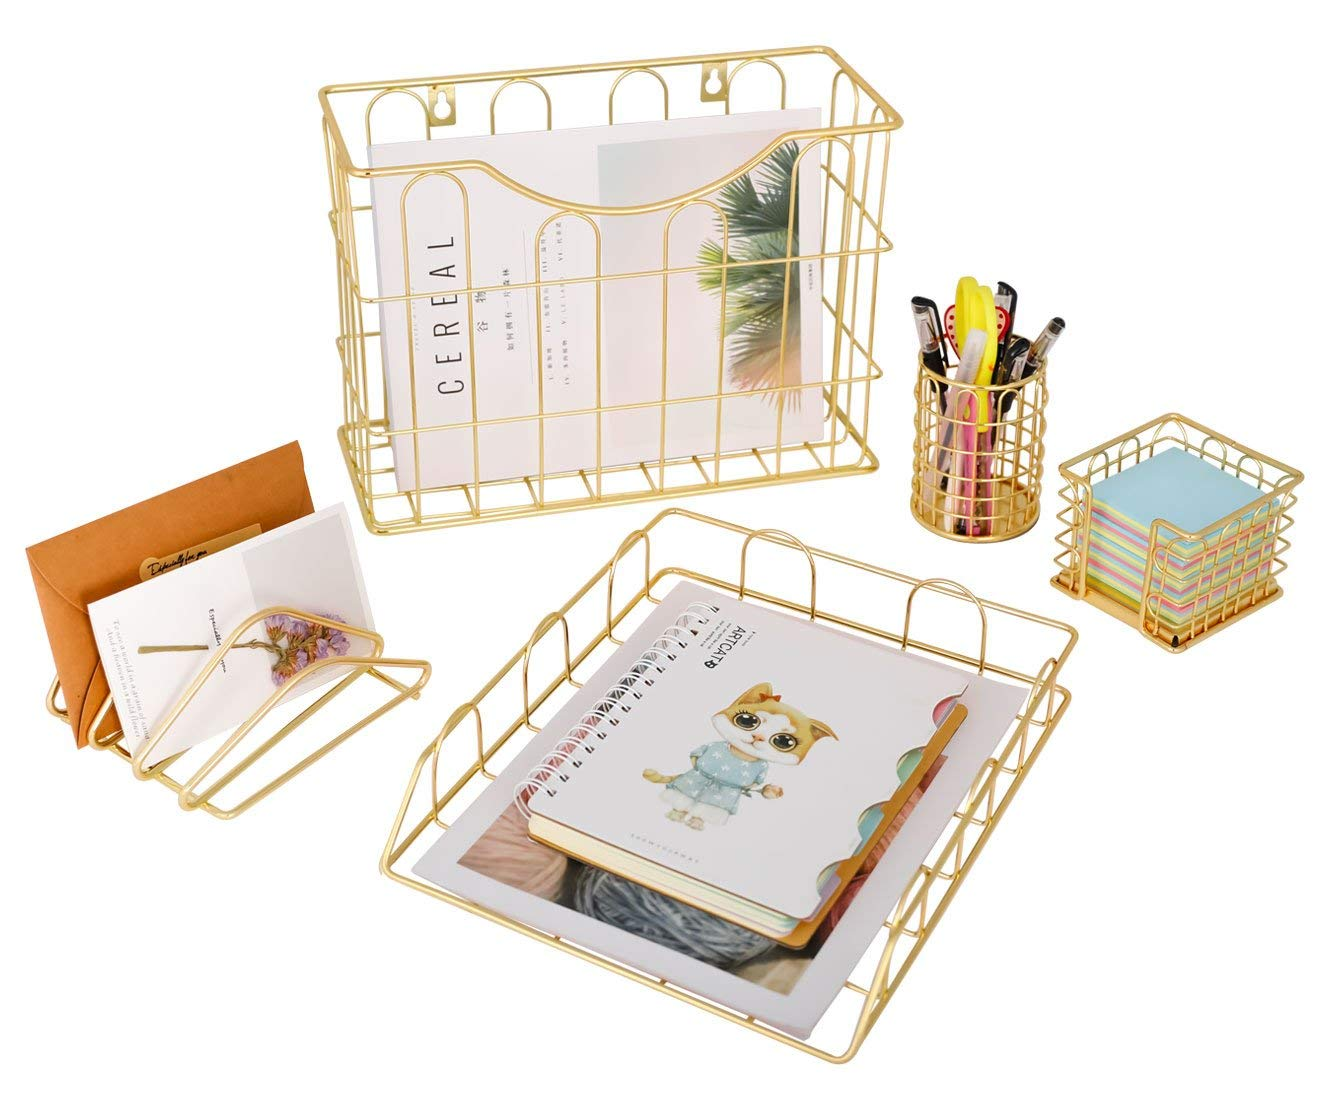 Buy Sparco Smart Sorter Organizer with Letter Tray in